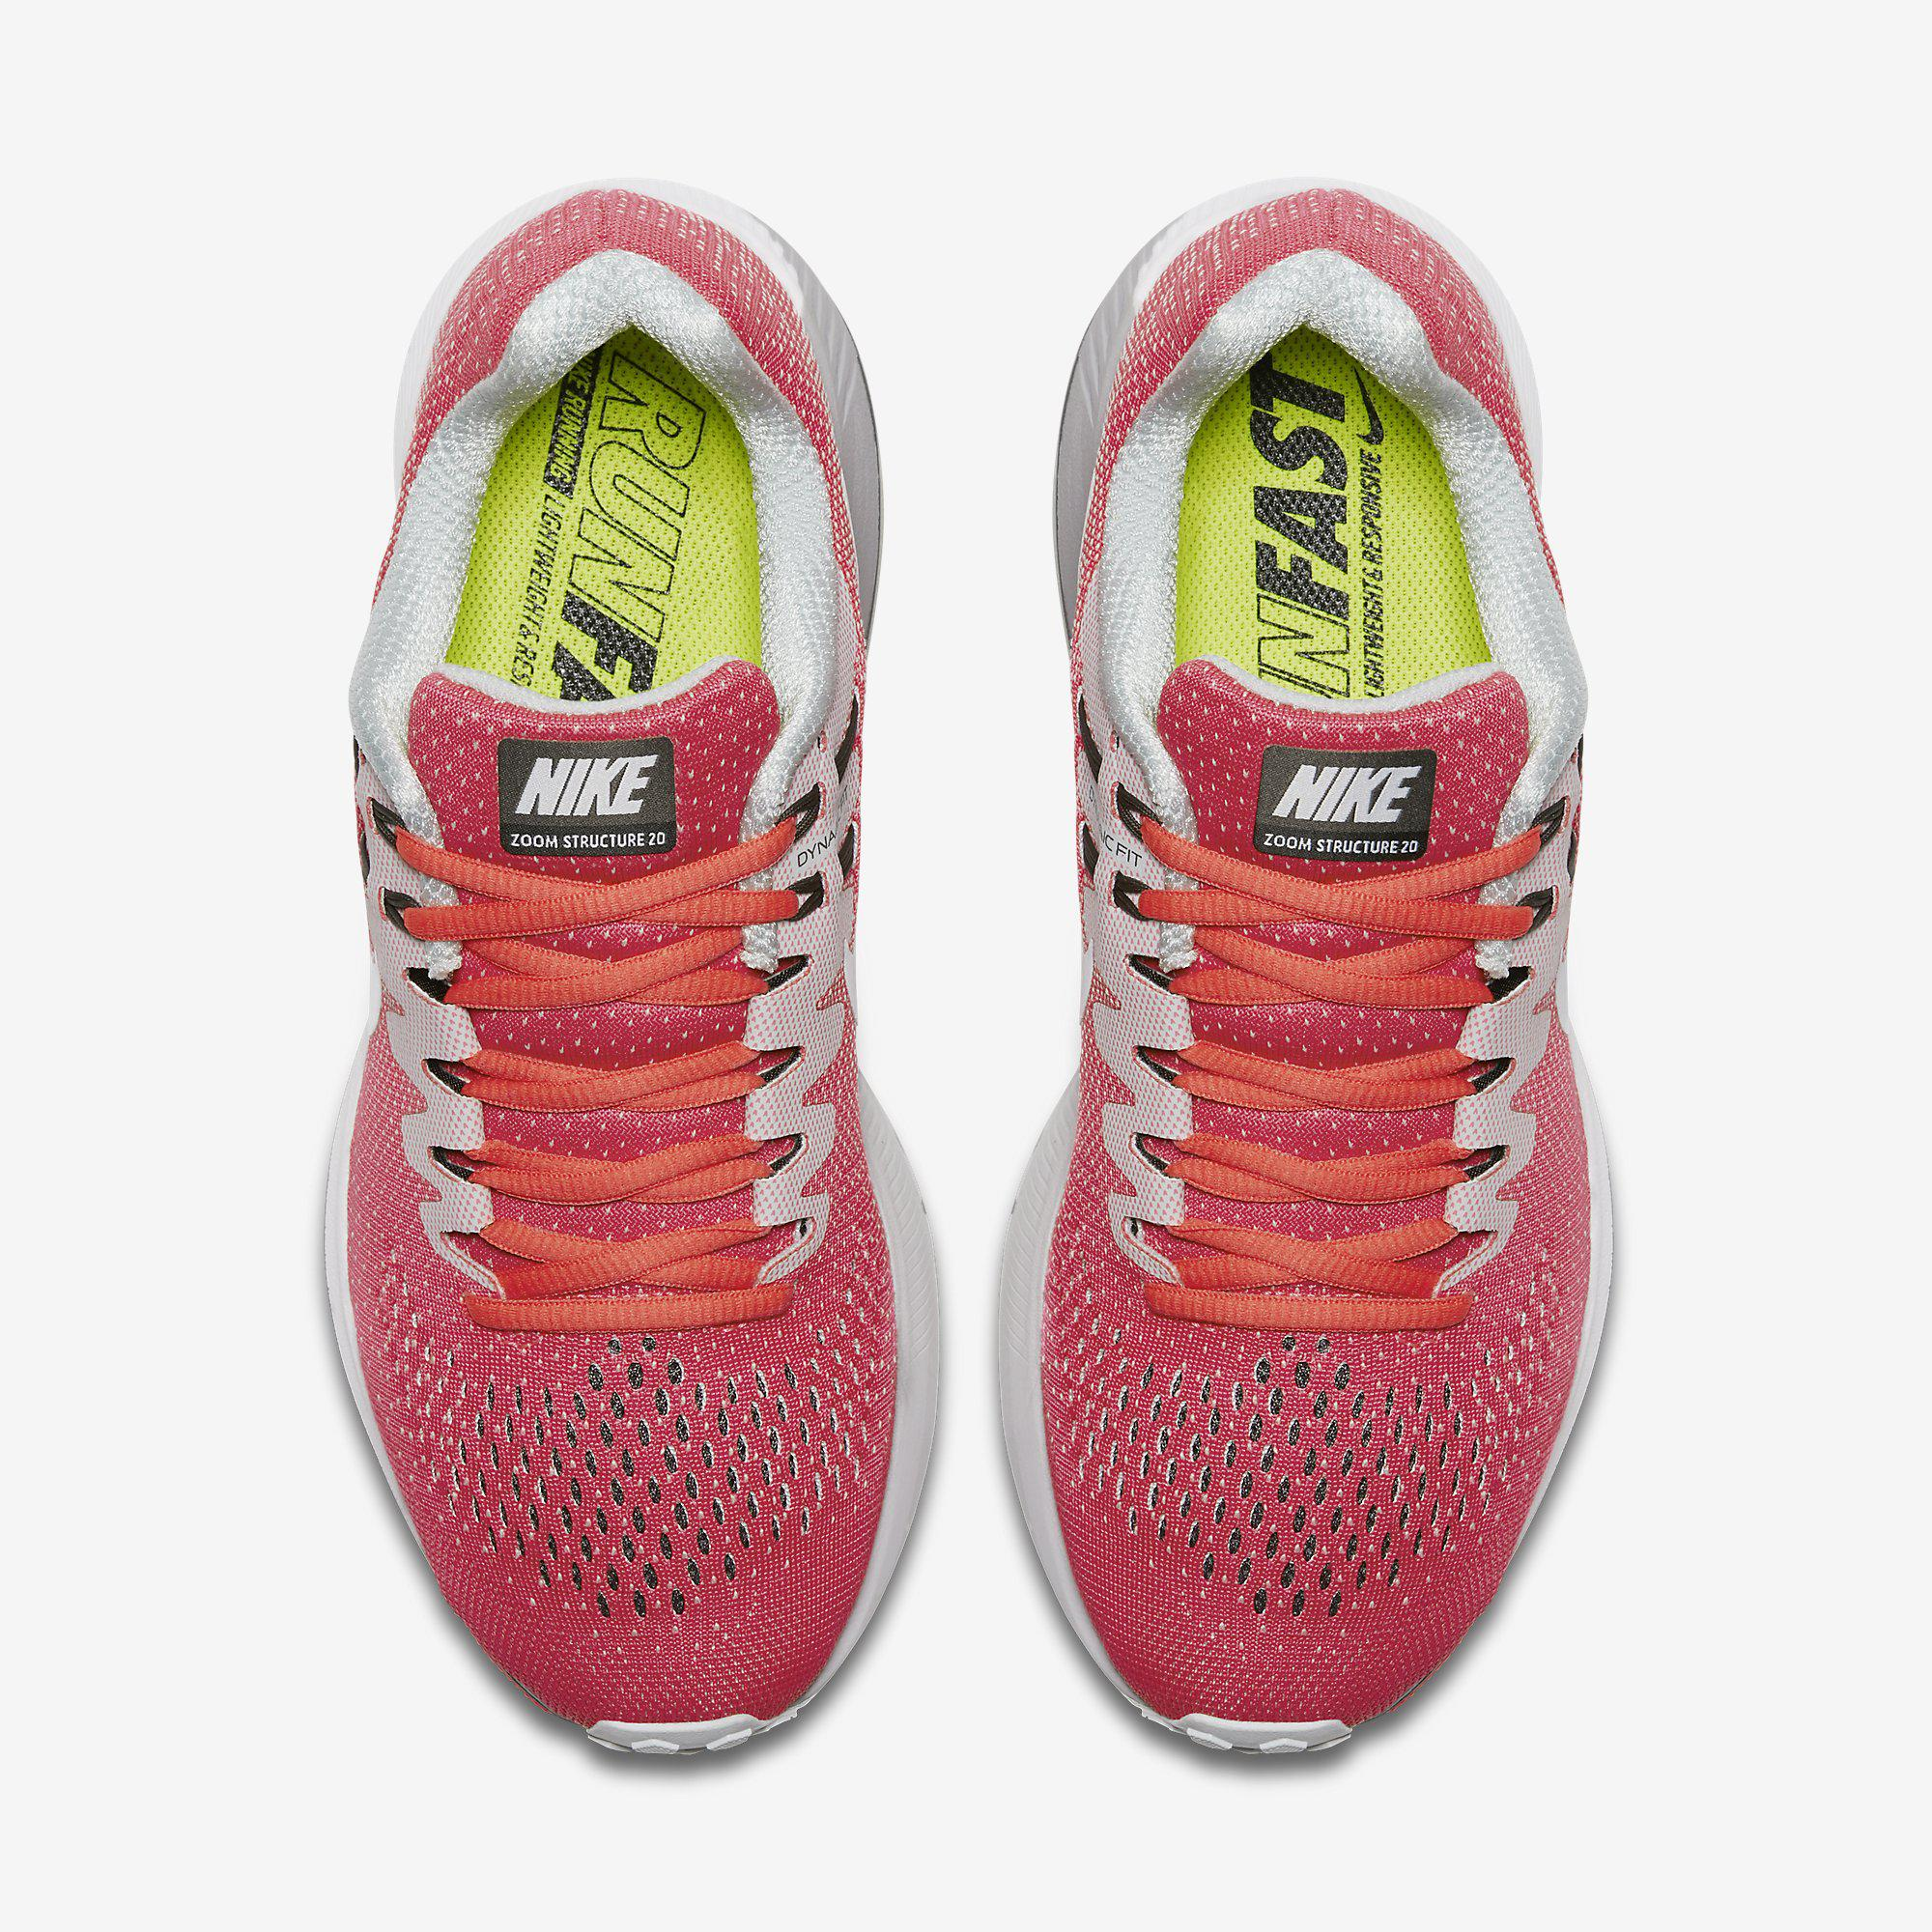 online store a4f23 1839a Nike Womens Air Zoom Structure 20 Running Shoe - Racer Pink